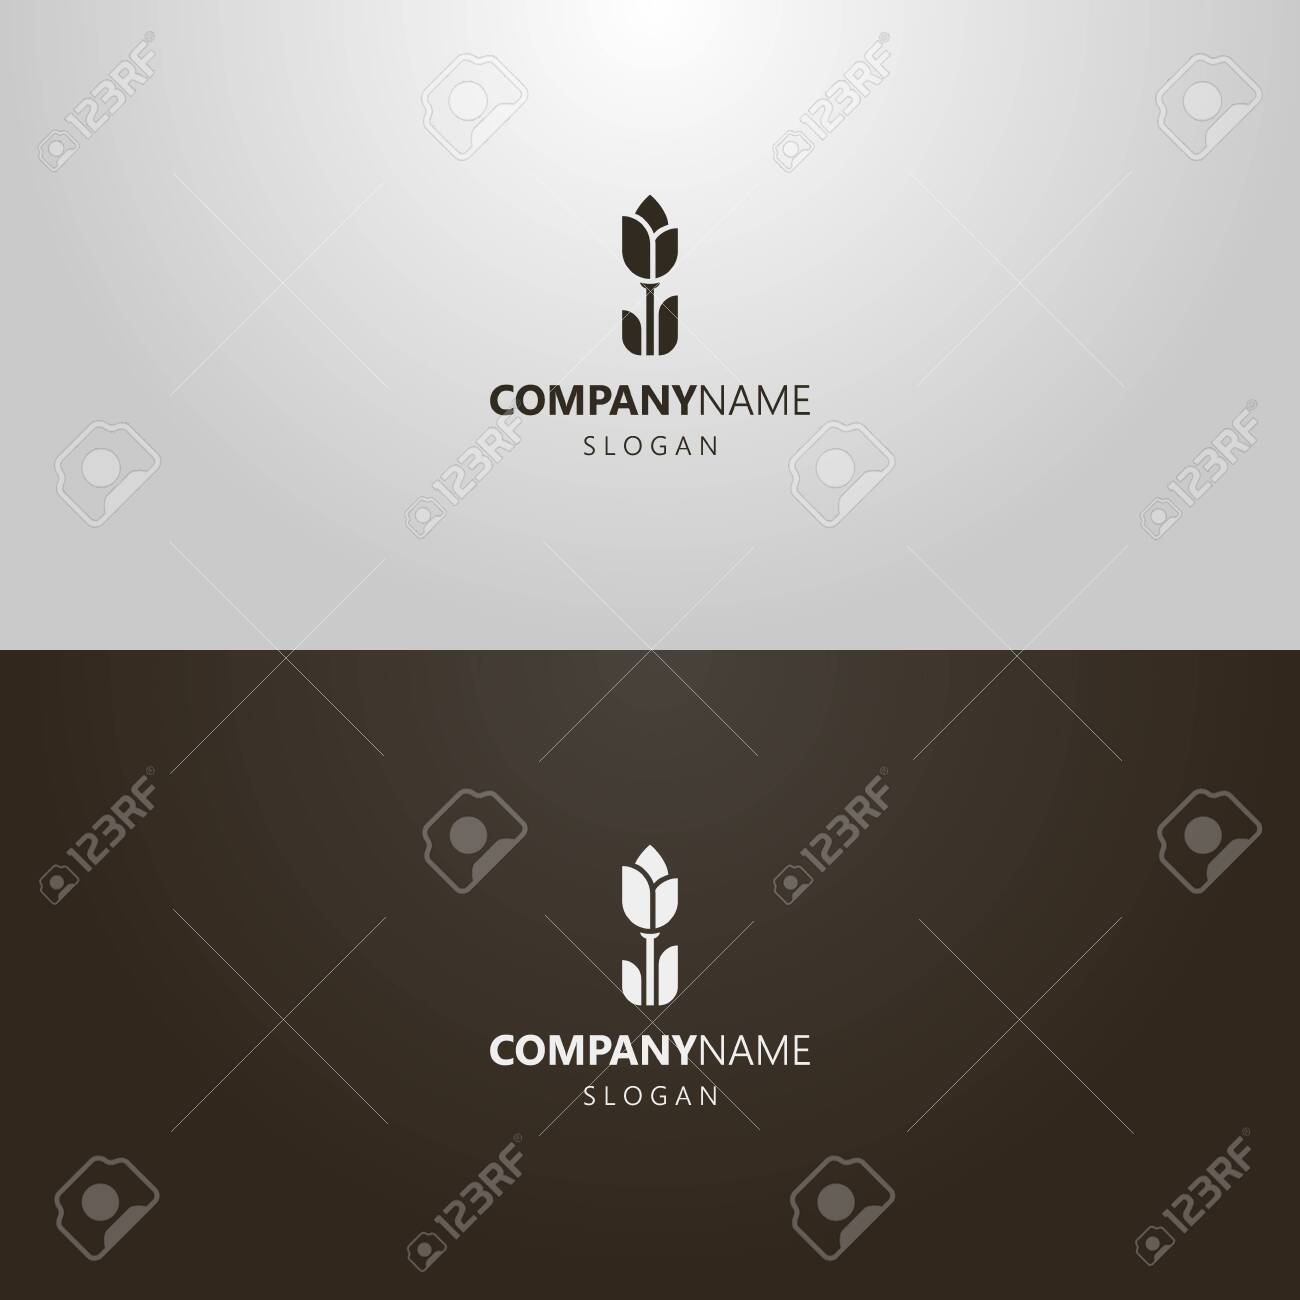 black and white simple vector flat art outline iconic logo of tulip flower - 145322304